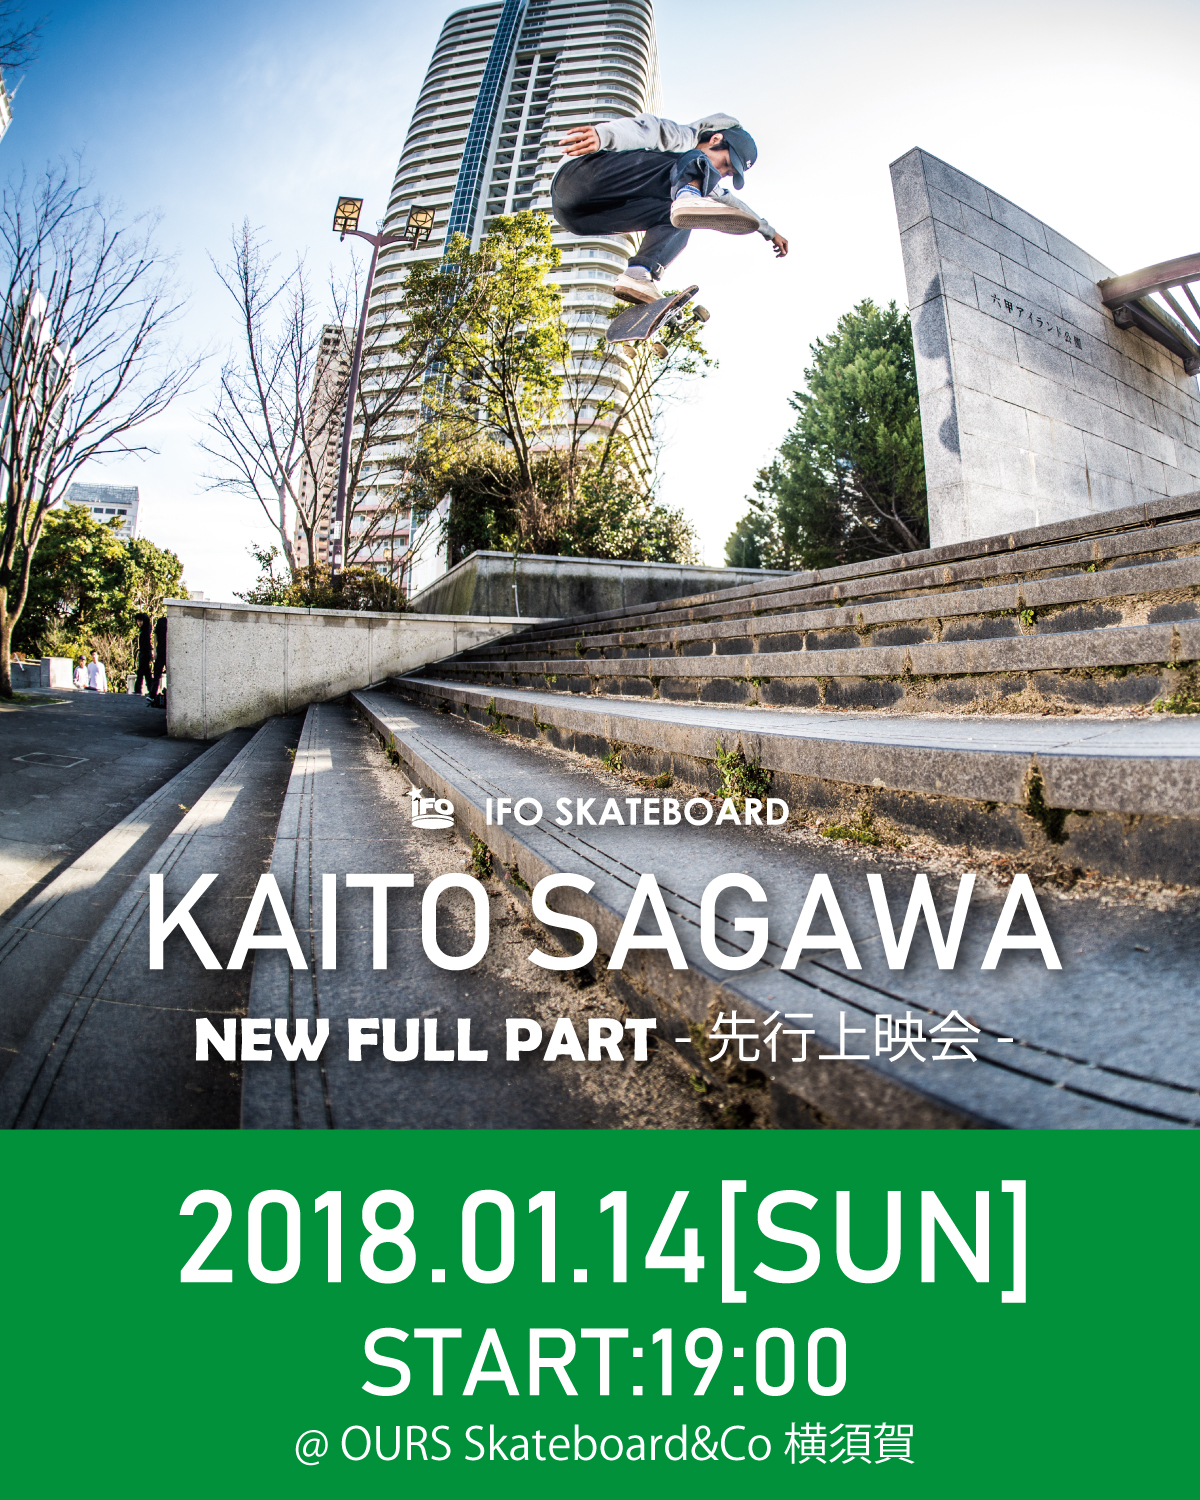 kaitosagawa_part_ours_insta